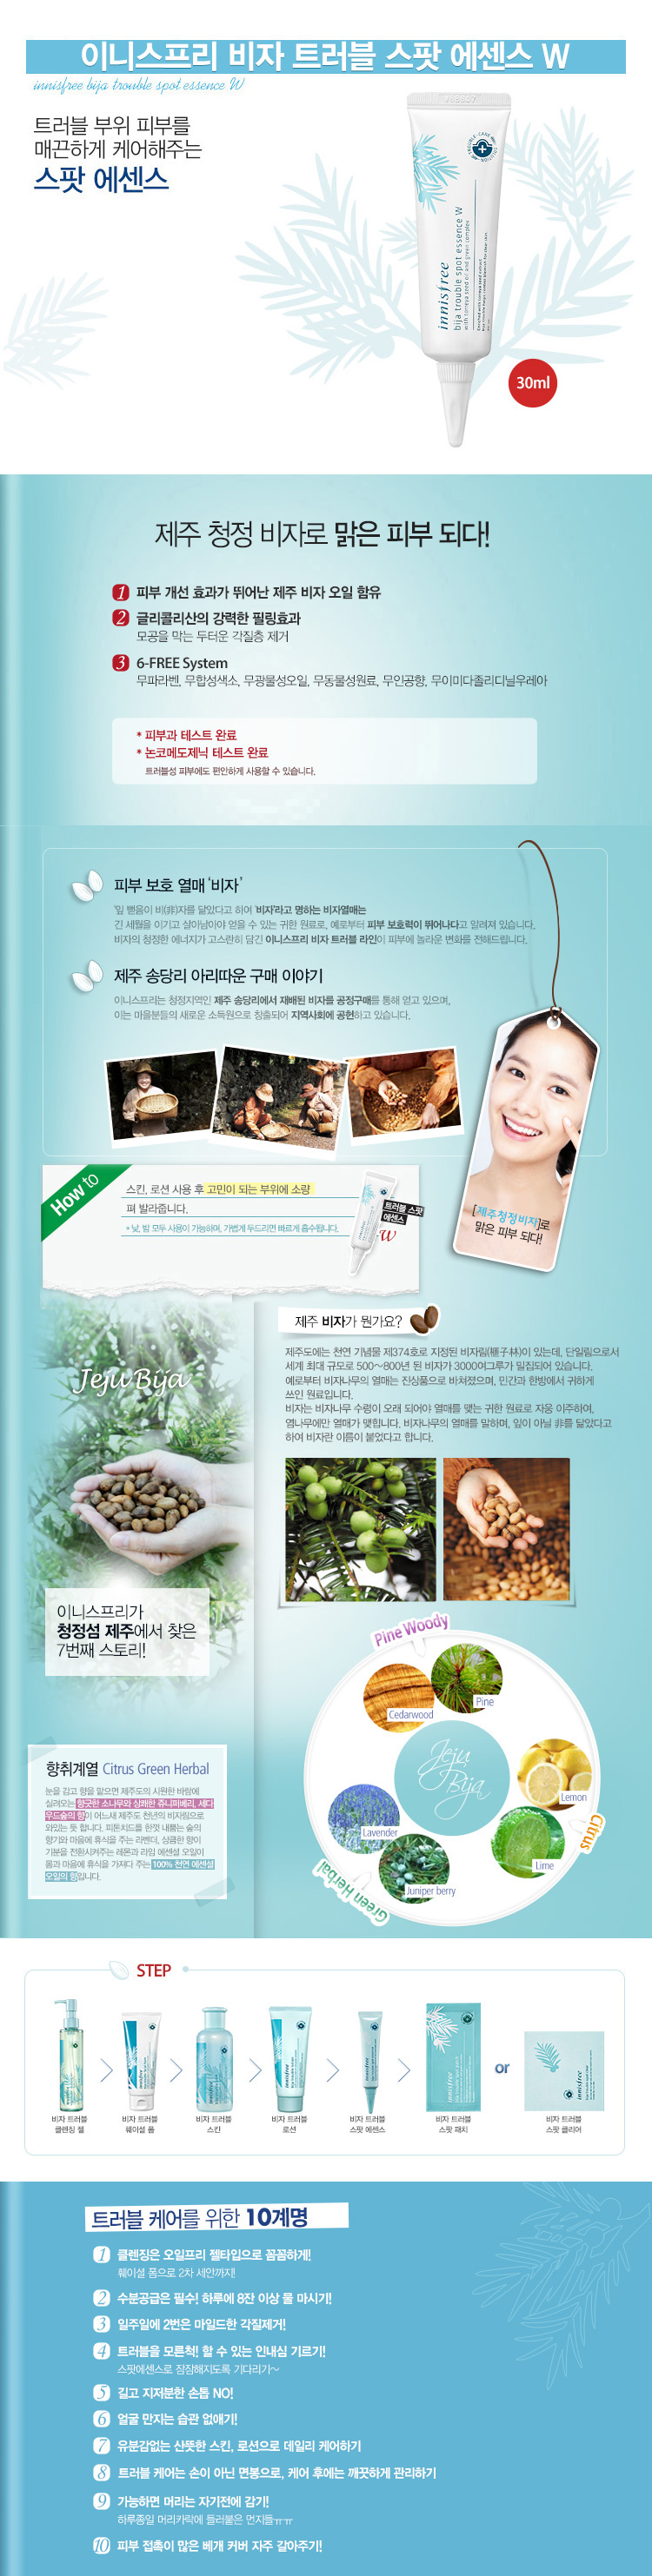 Innisfree - Bija trouble spot essence